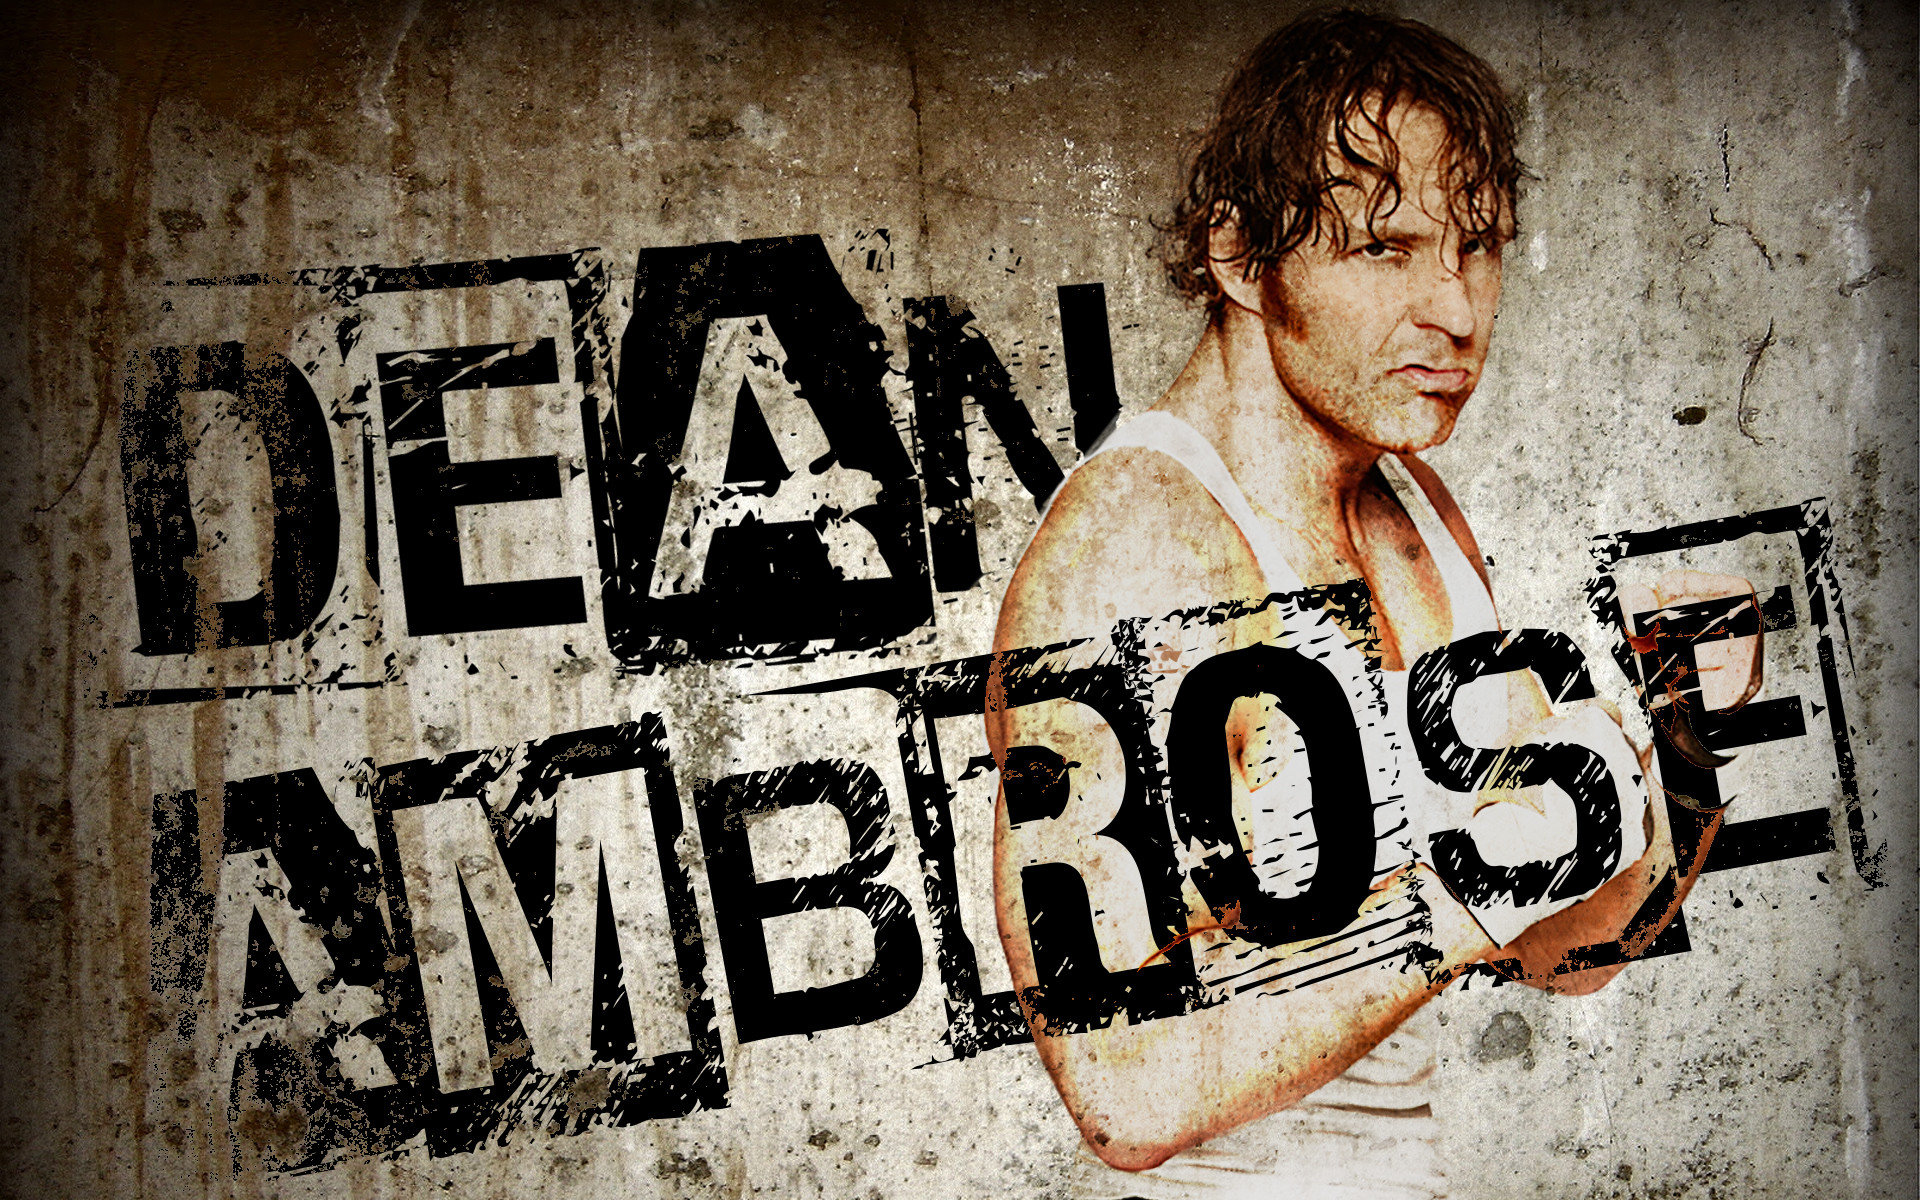 1920x1200 Dean Ambrose HD Wallpapers Find best latest Dean Ambrose HD Wallpapers for  your PC desktop background